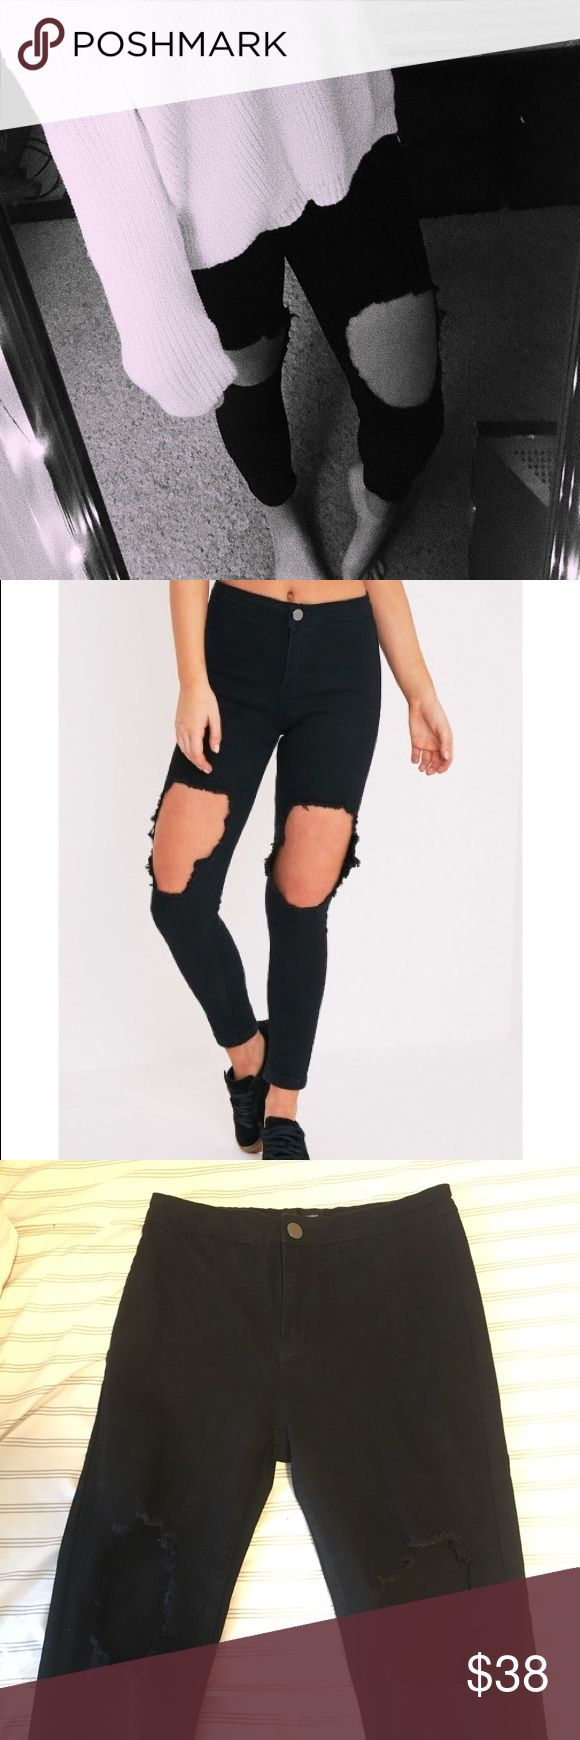 Black knee rip jeans Size 6 labeled UK10- pretty little things not misguided Missguided Jeans Skinny